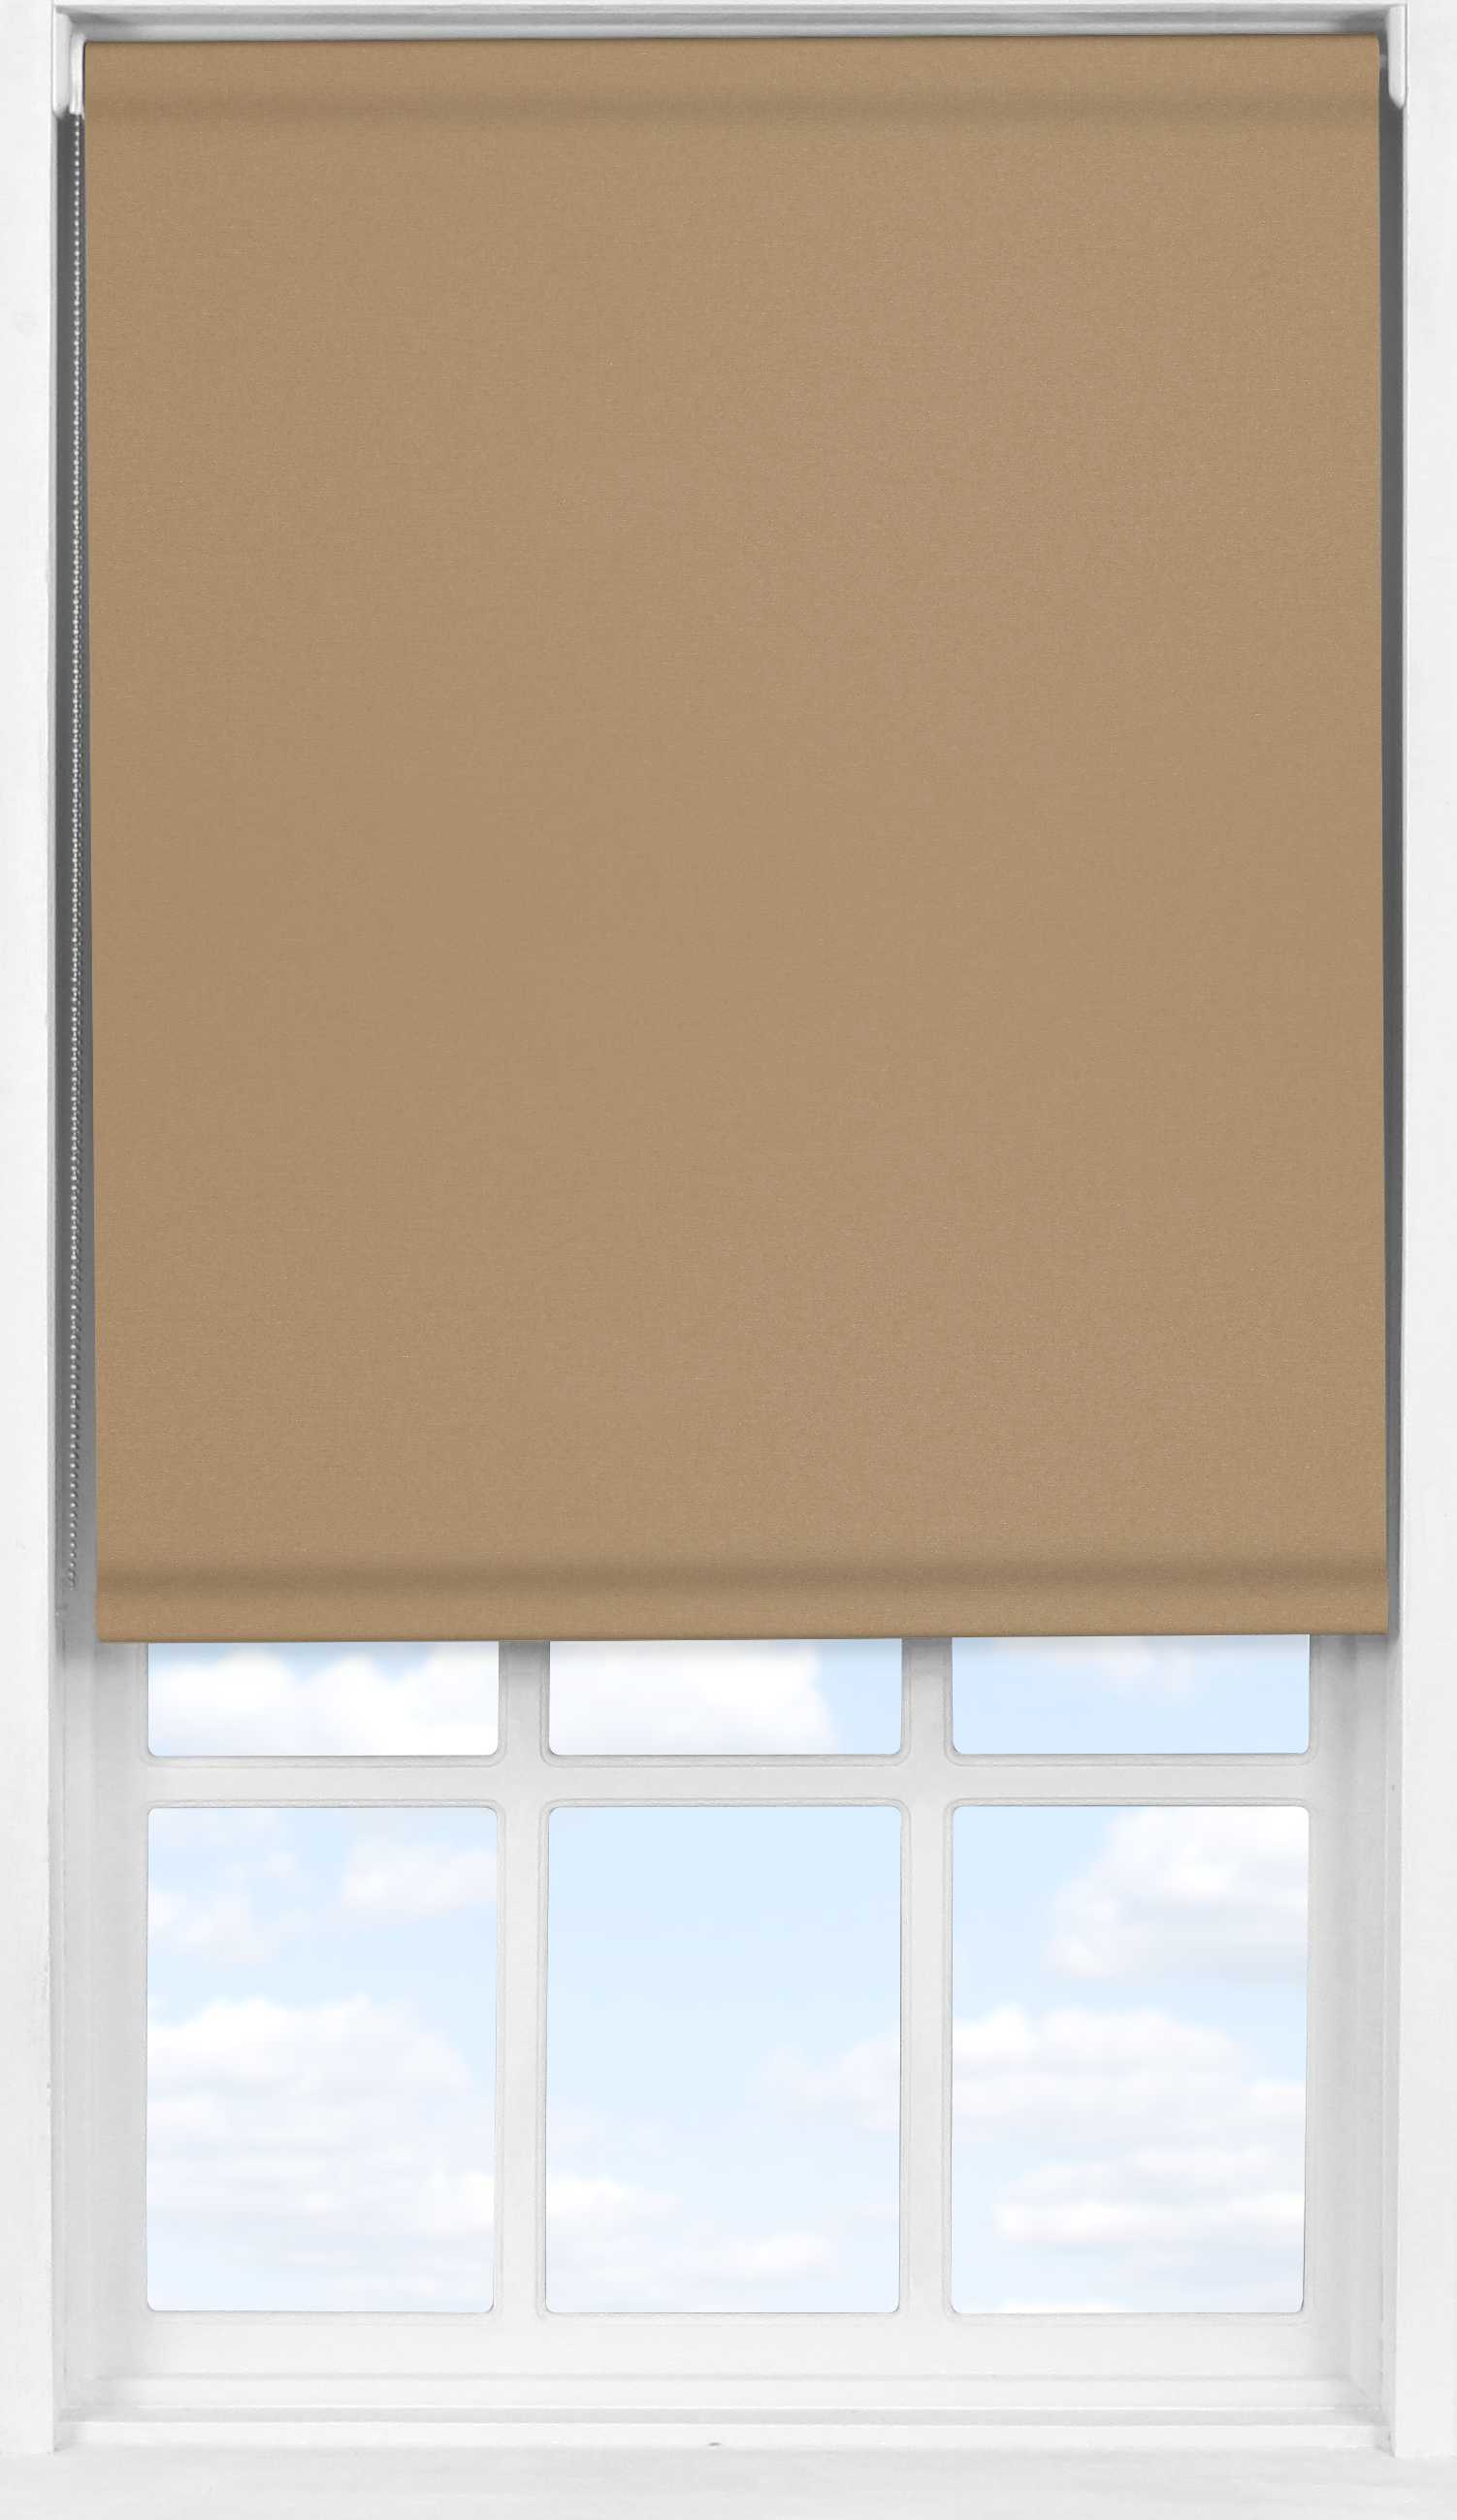 Easifit Roller Blind in Turf Blackout